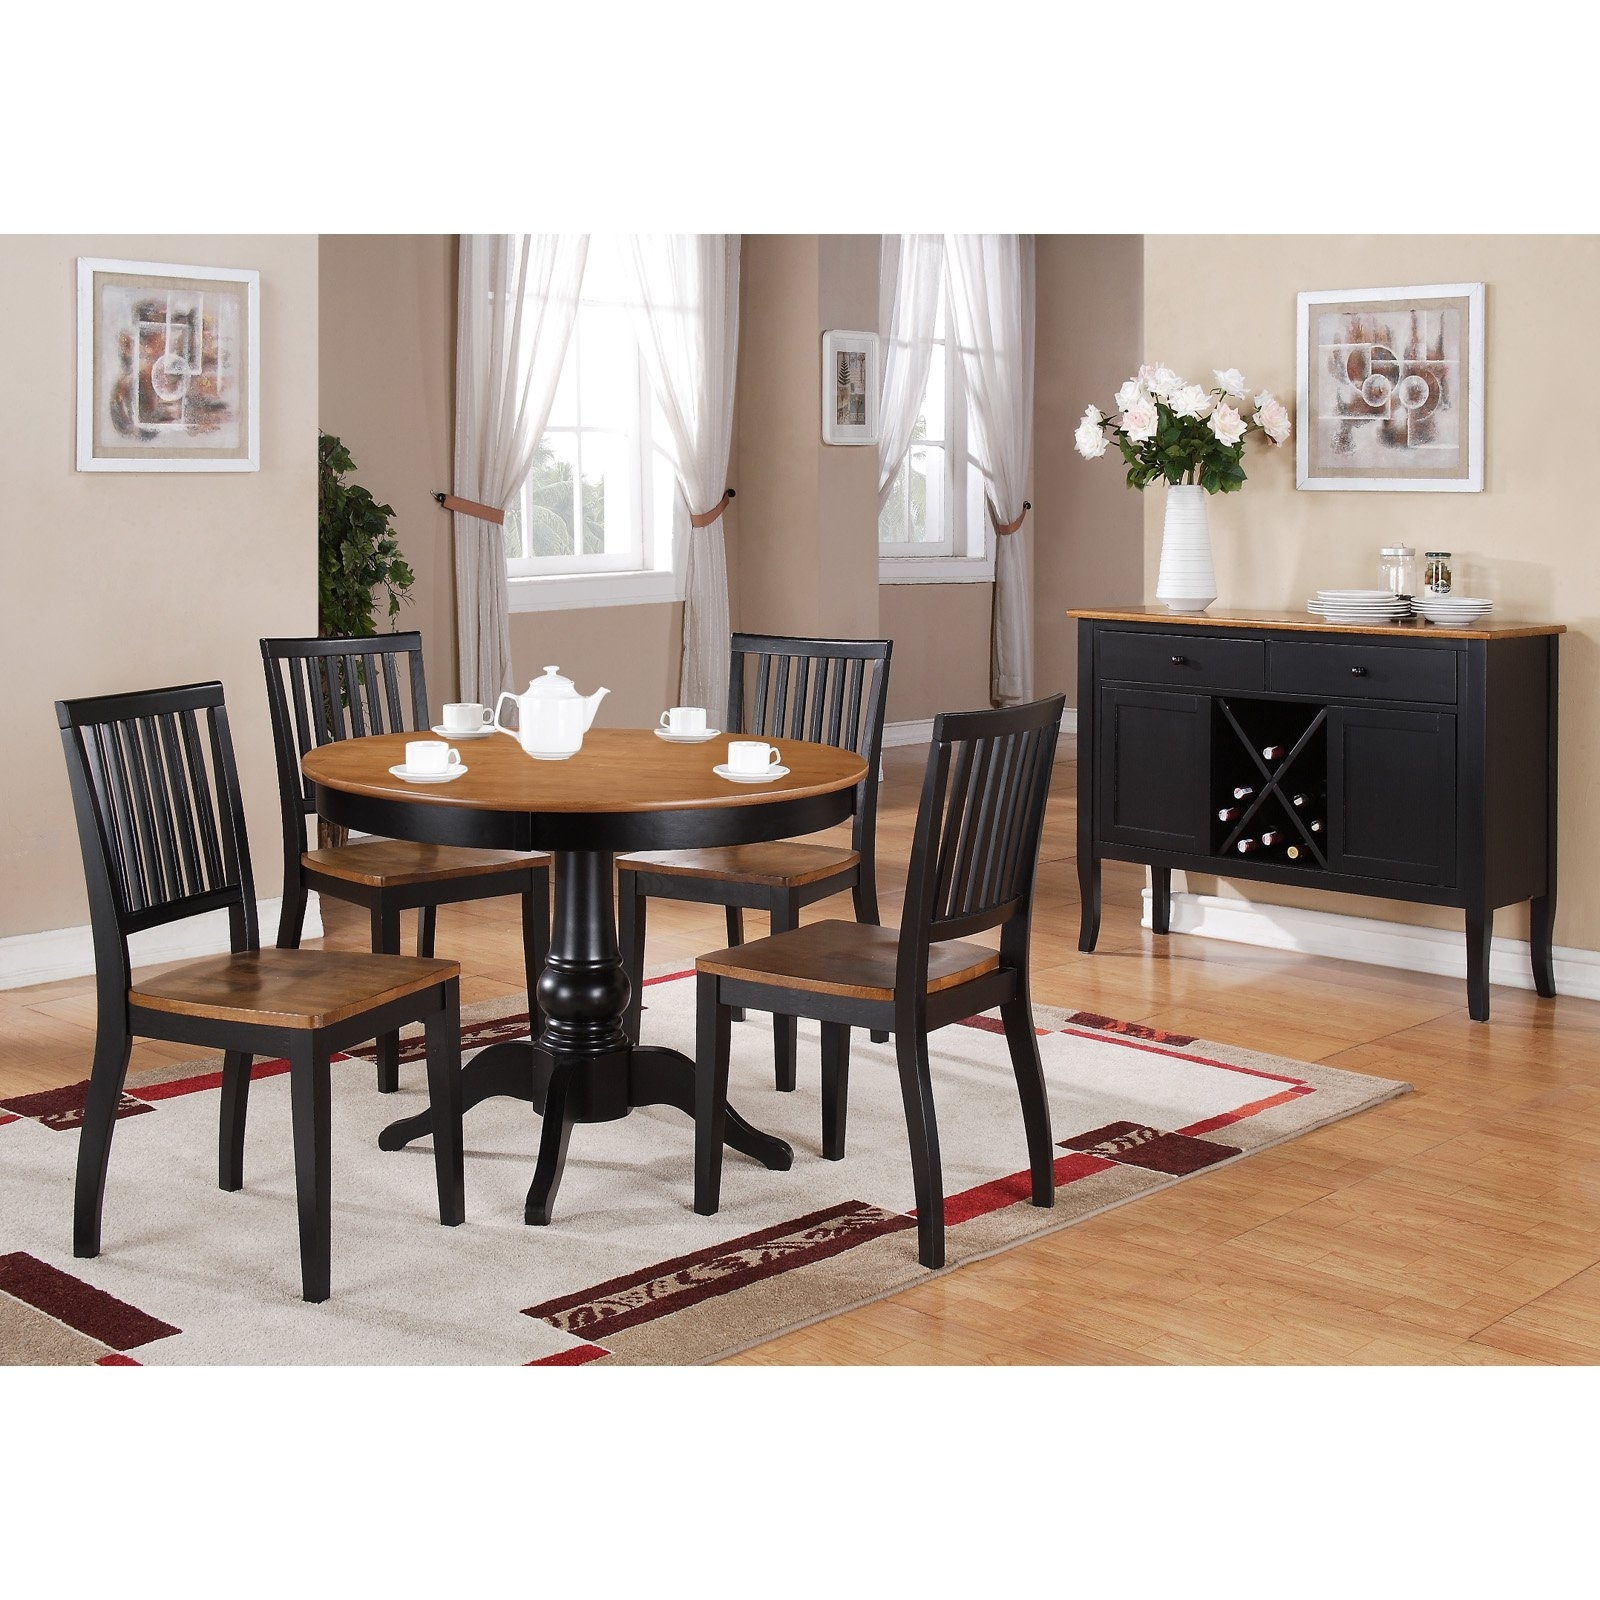 Steve Silver 5 Piece Candice Two Tone Round Pedestal Dining Table Inside Newest Candice Ii 5 Piece Round Dining Sets With Slat Back Side Chairs (Image 17 of 20)